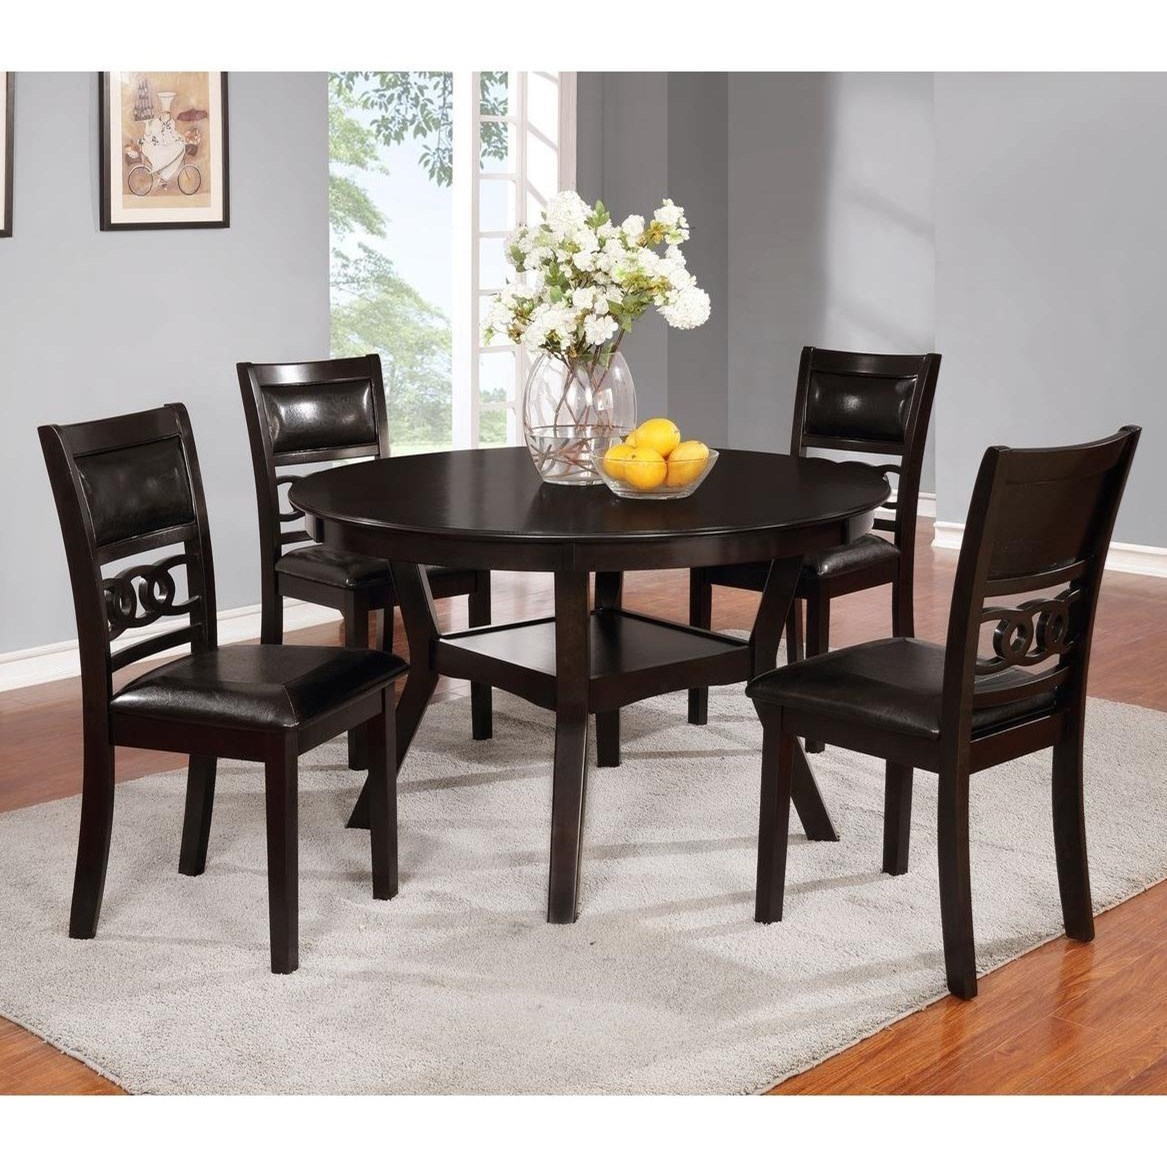 Lifestyle Linking RingDining Table And Four Chairs ...